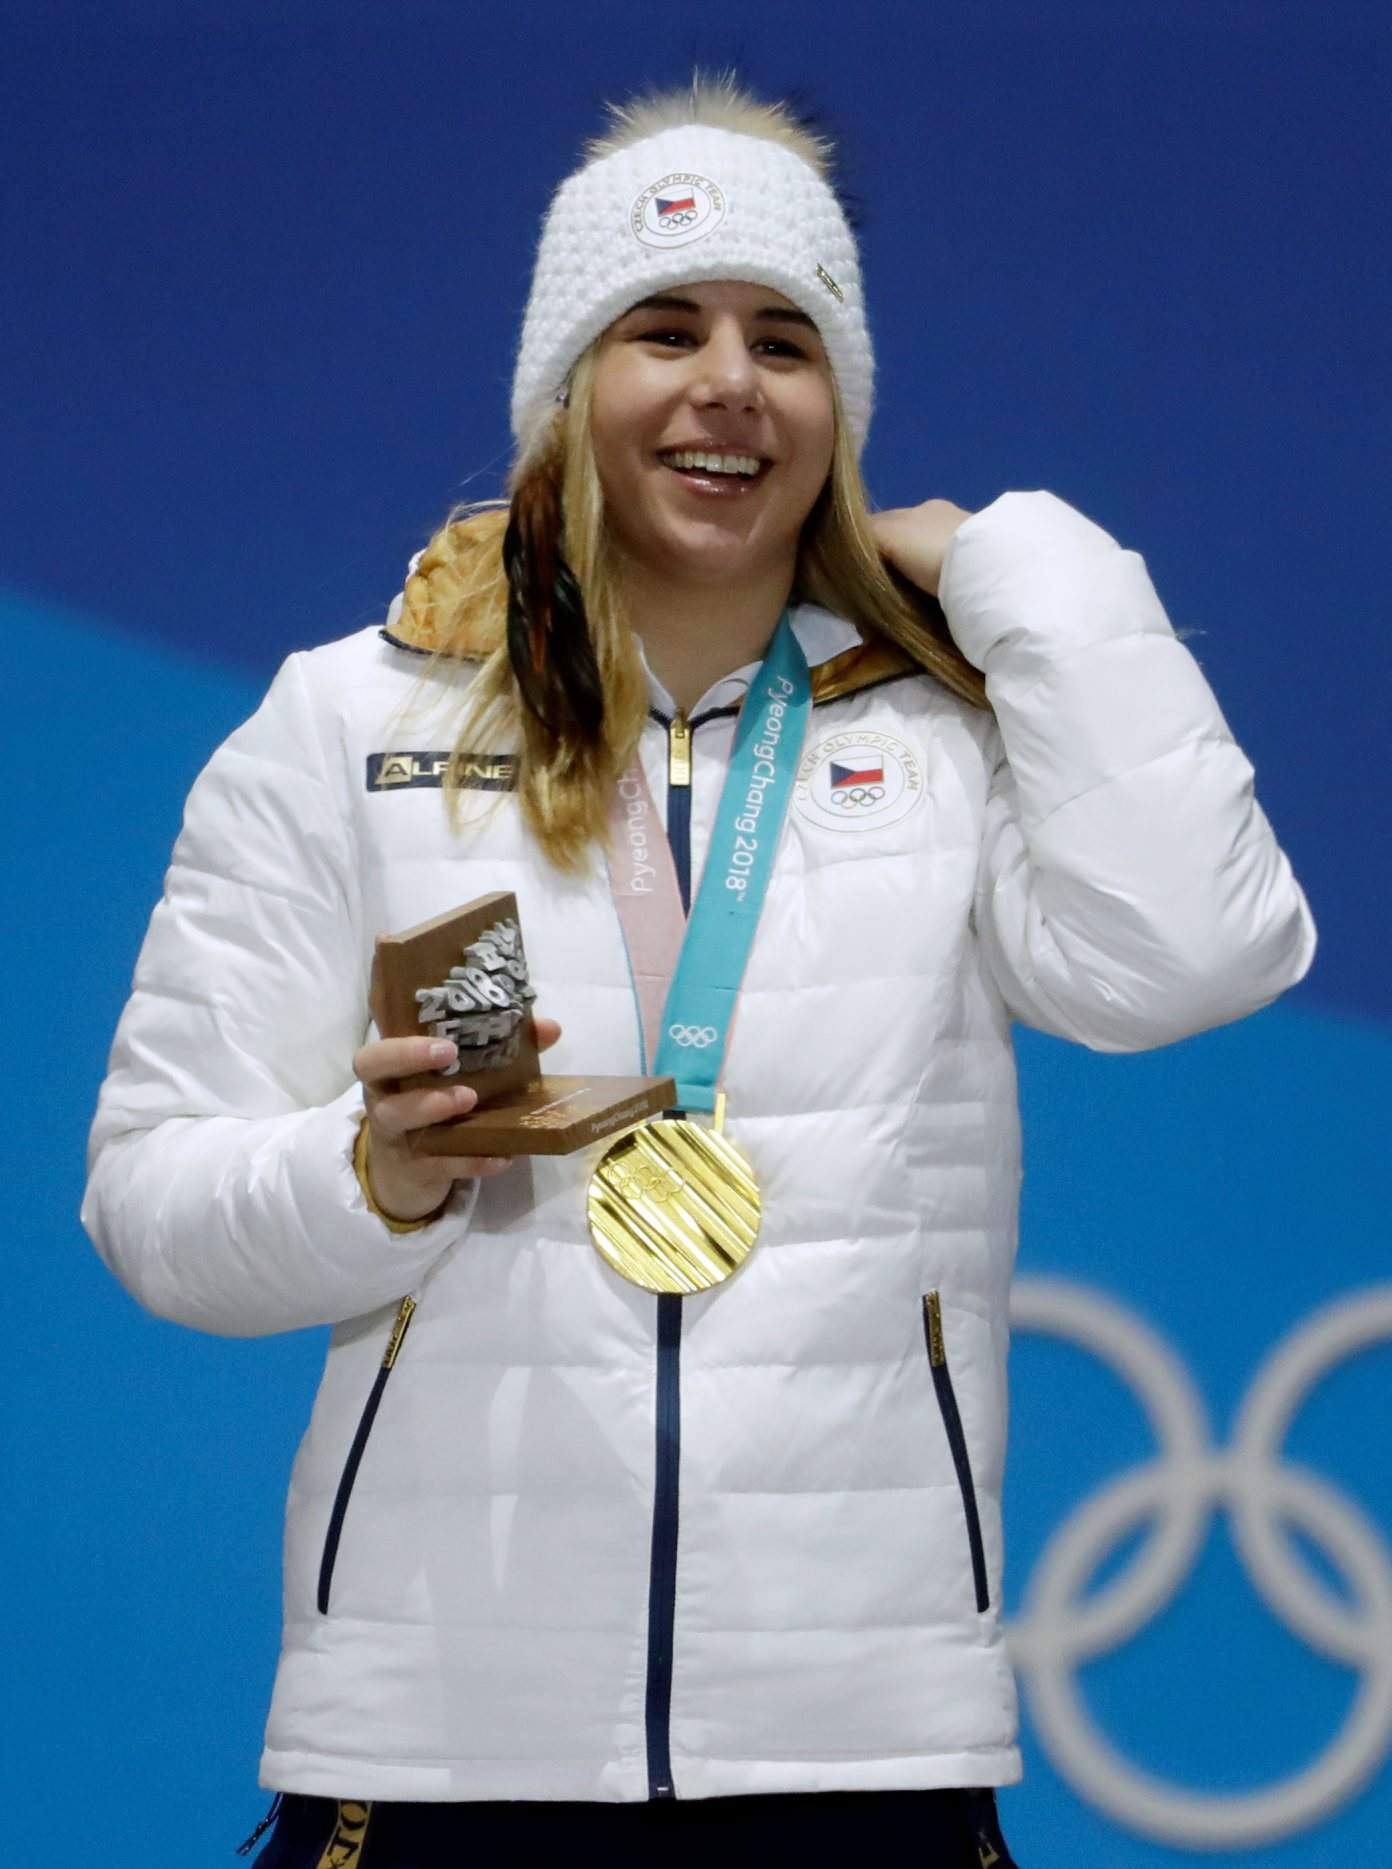 Japan winter olympics women golds, xxx free tgp